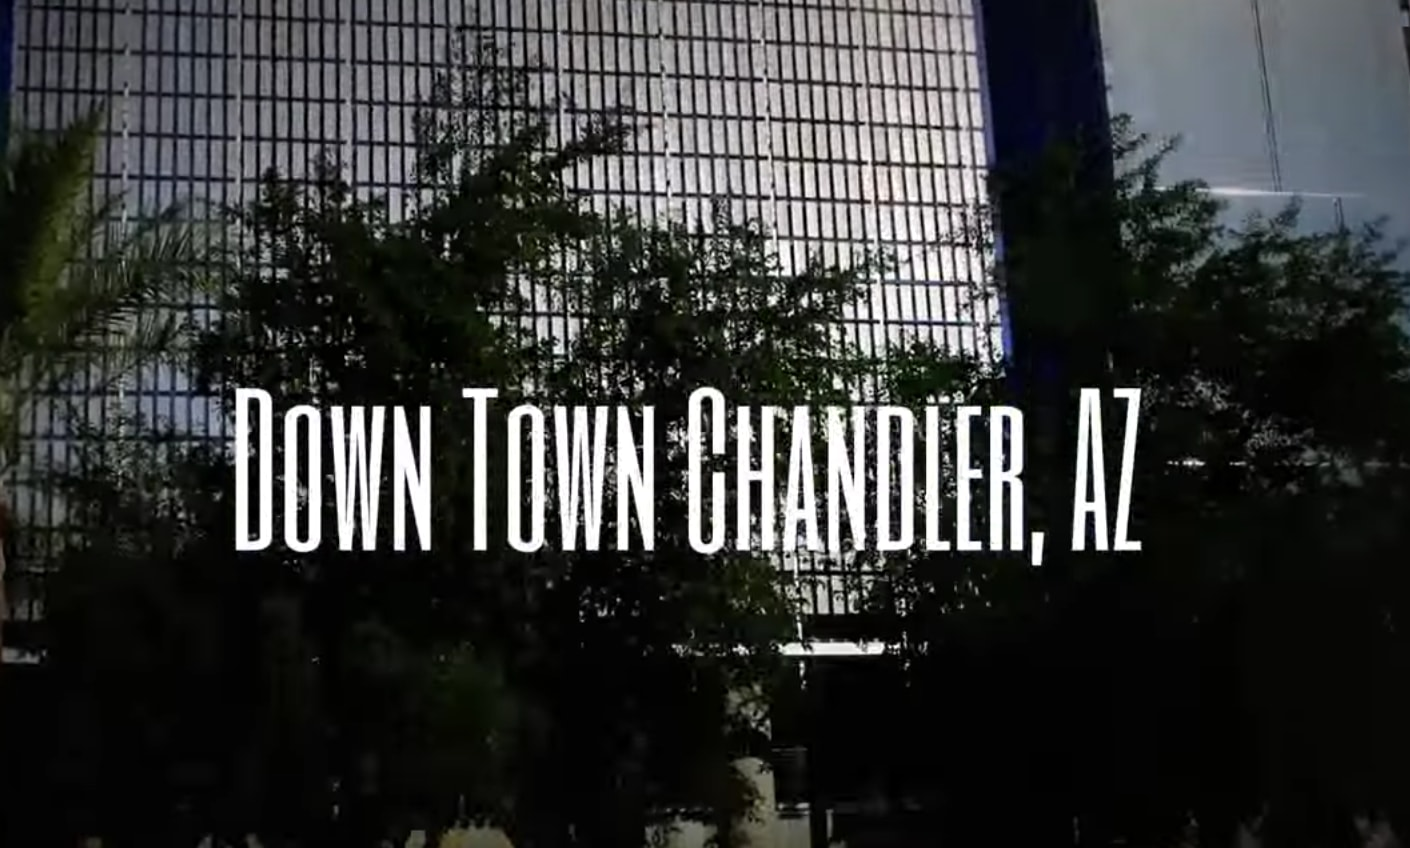 Downtown Chandler SEO